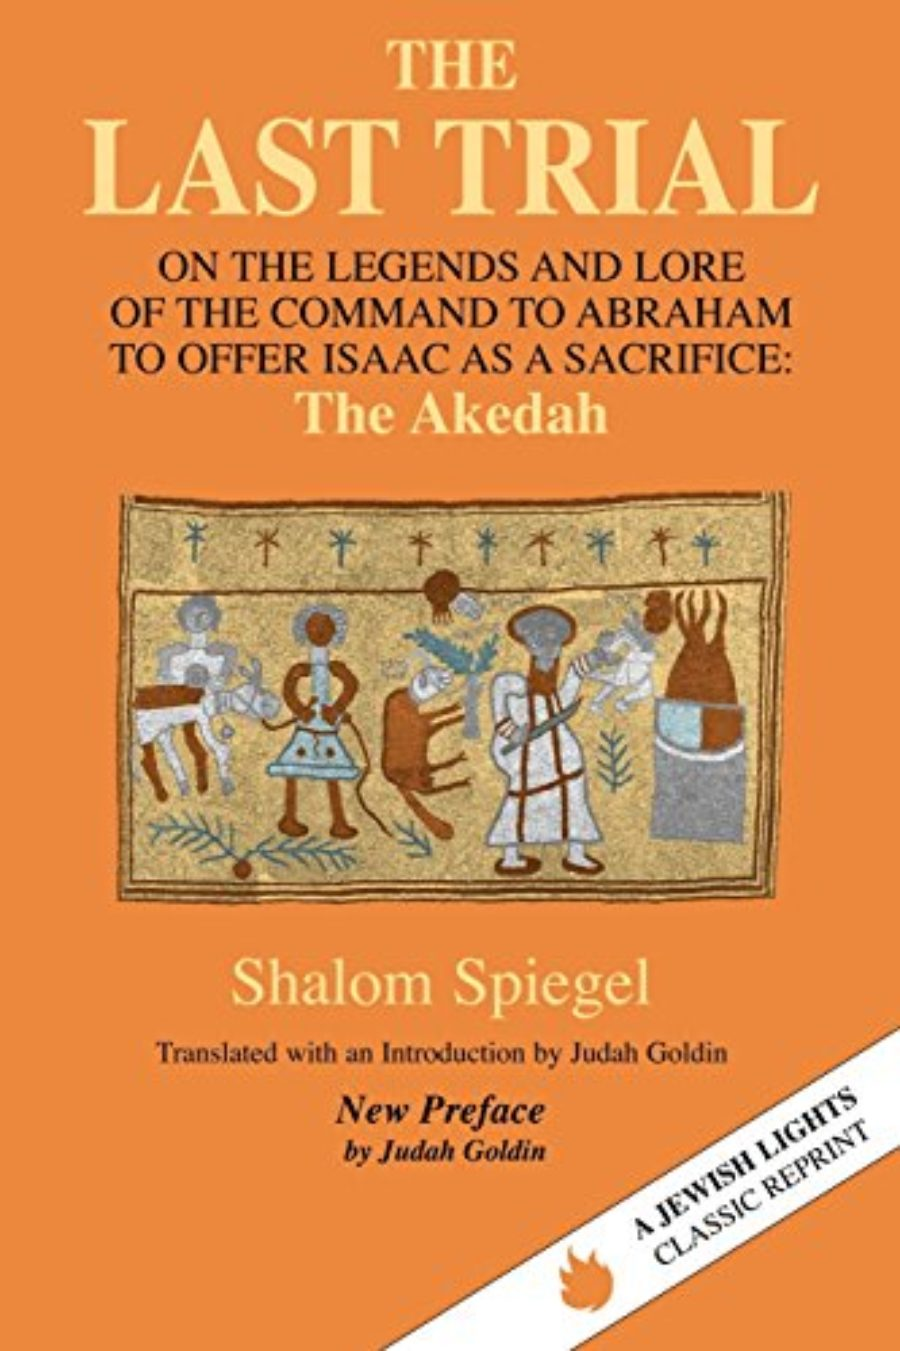 Cover of The Last Trial: On the Legends and Lore of the Command to Abraham to Offer Isaac as a Sacrifice (Jewish Lights Classic Reprint)